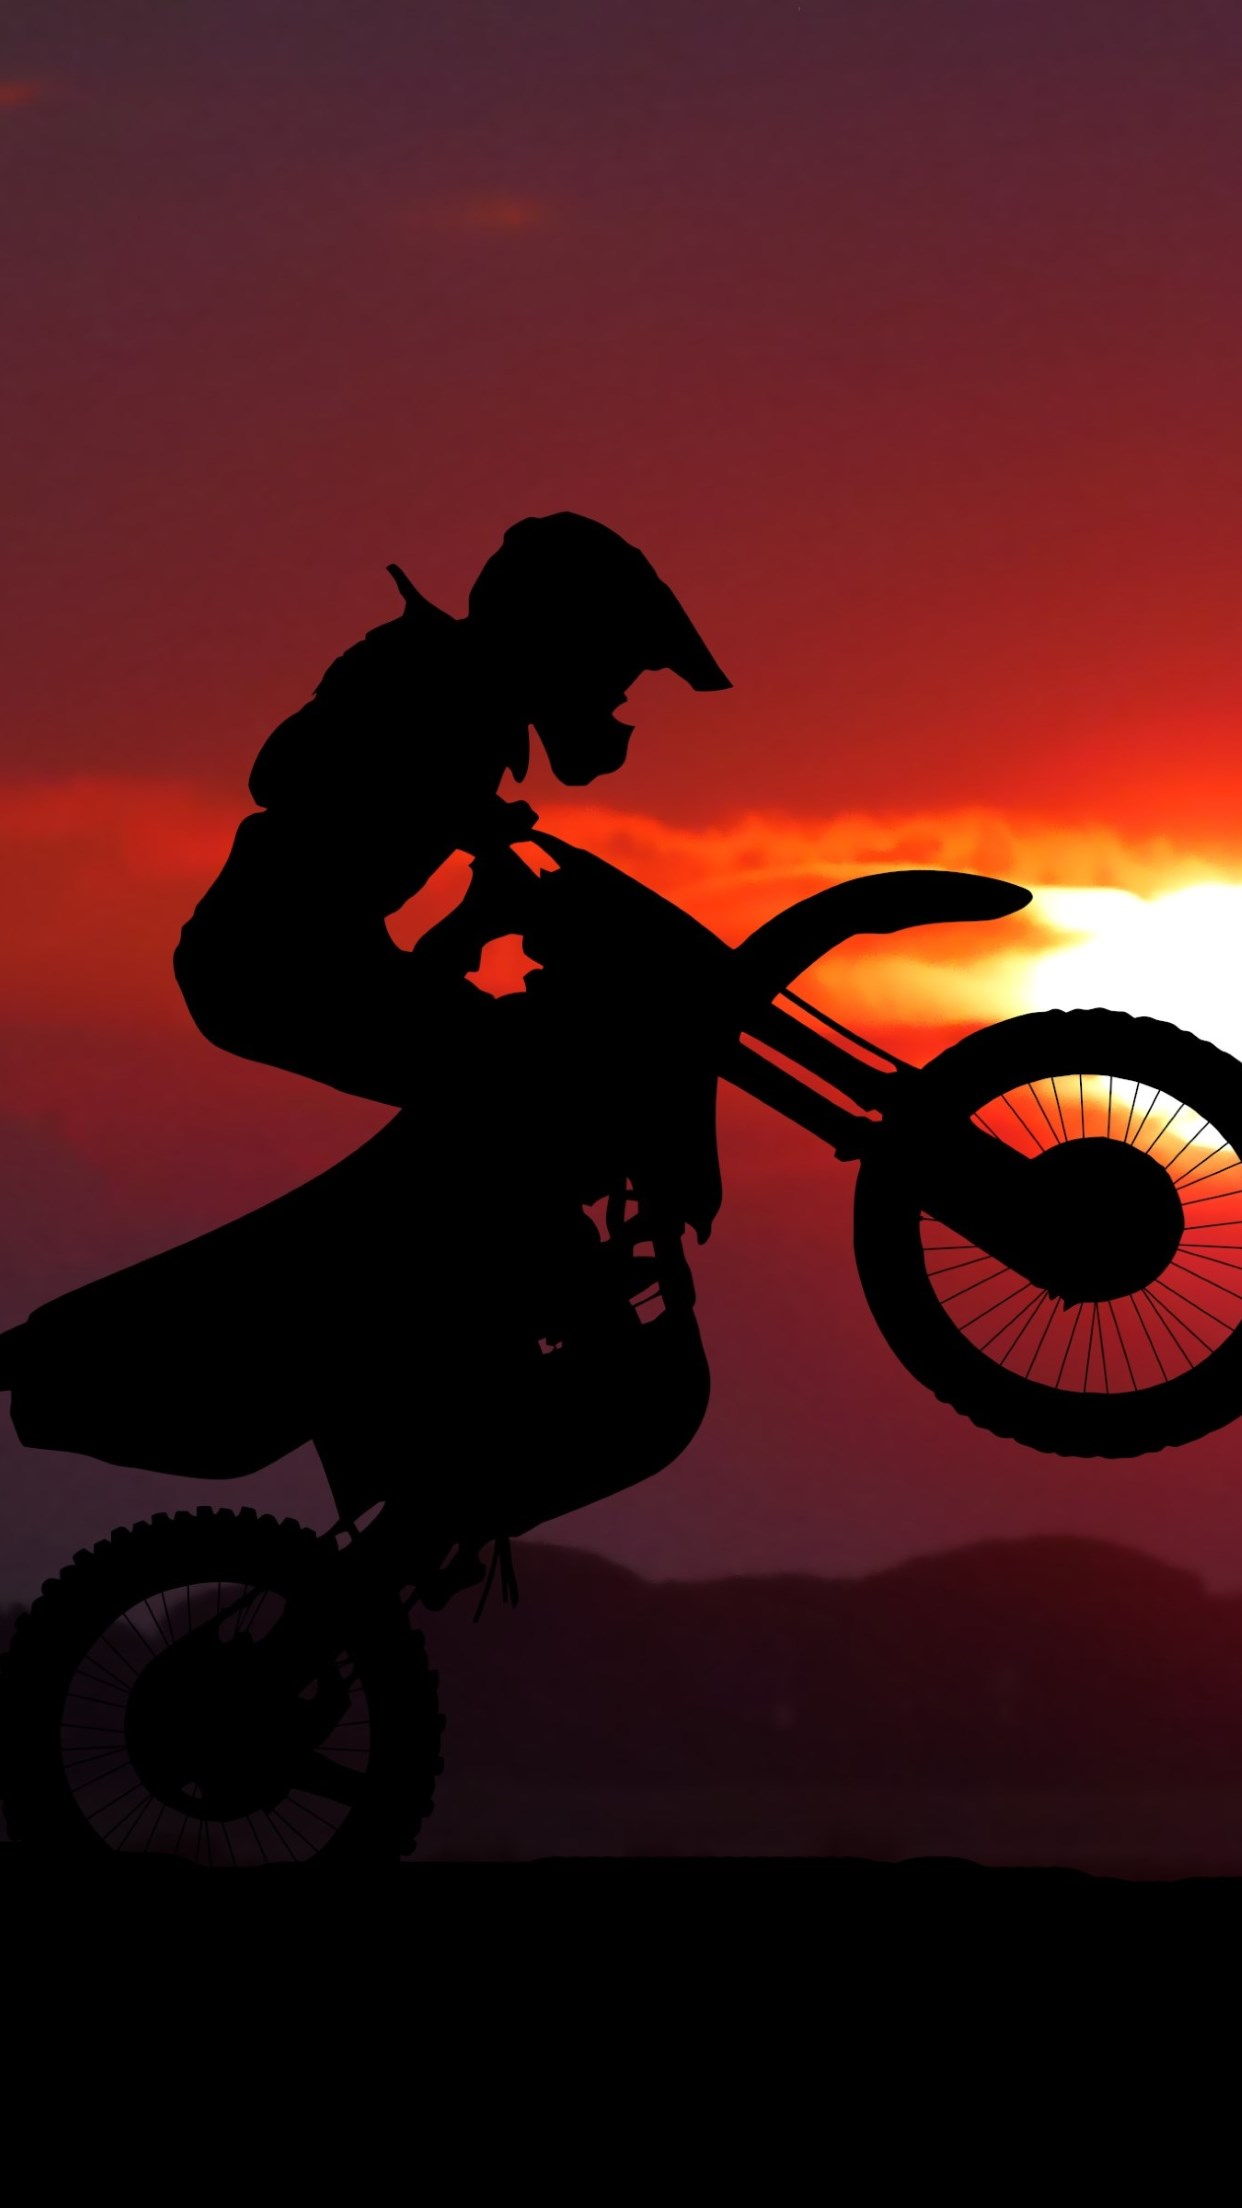 Biker on motorcycle at sunrise wallpaper 1242x2208